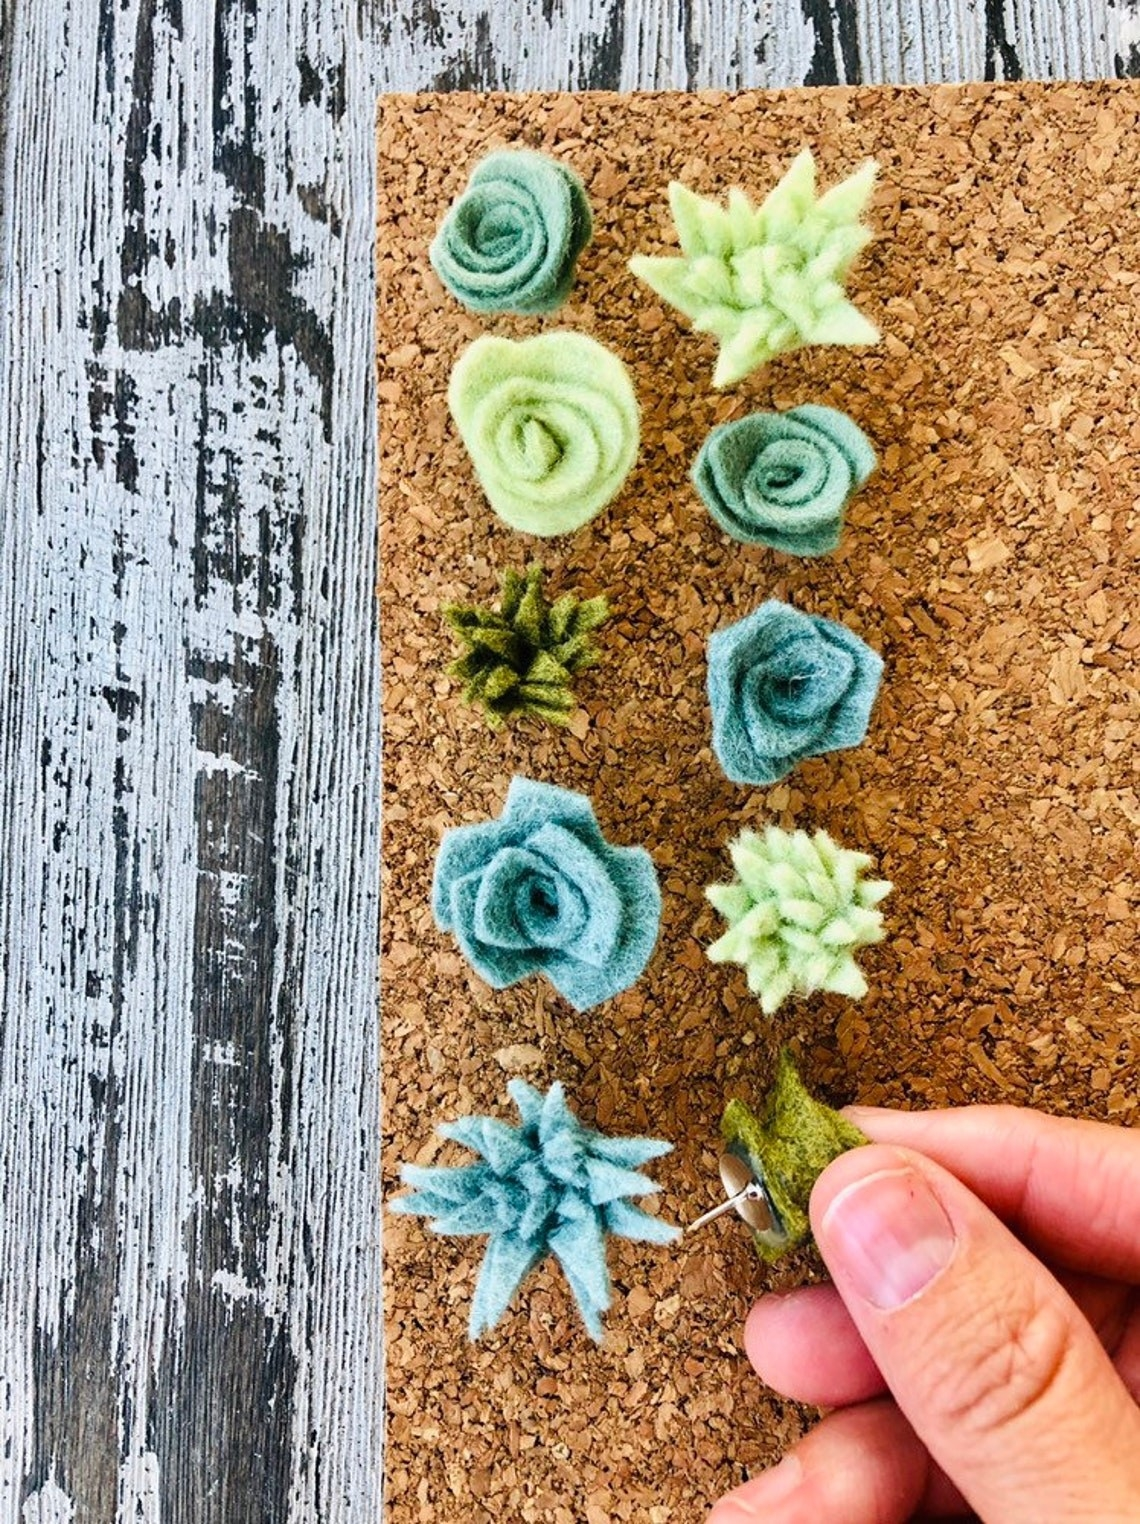 pins shaped like various succulents